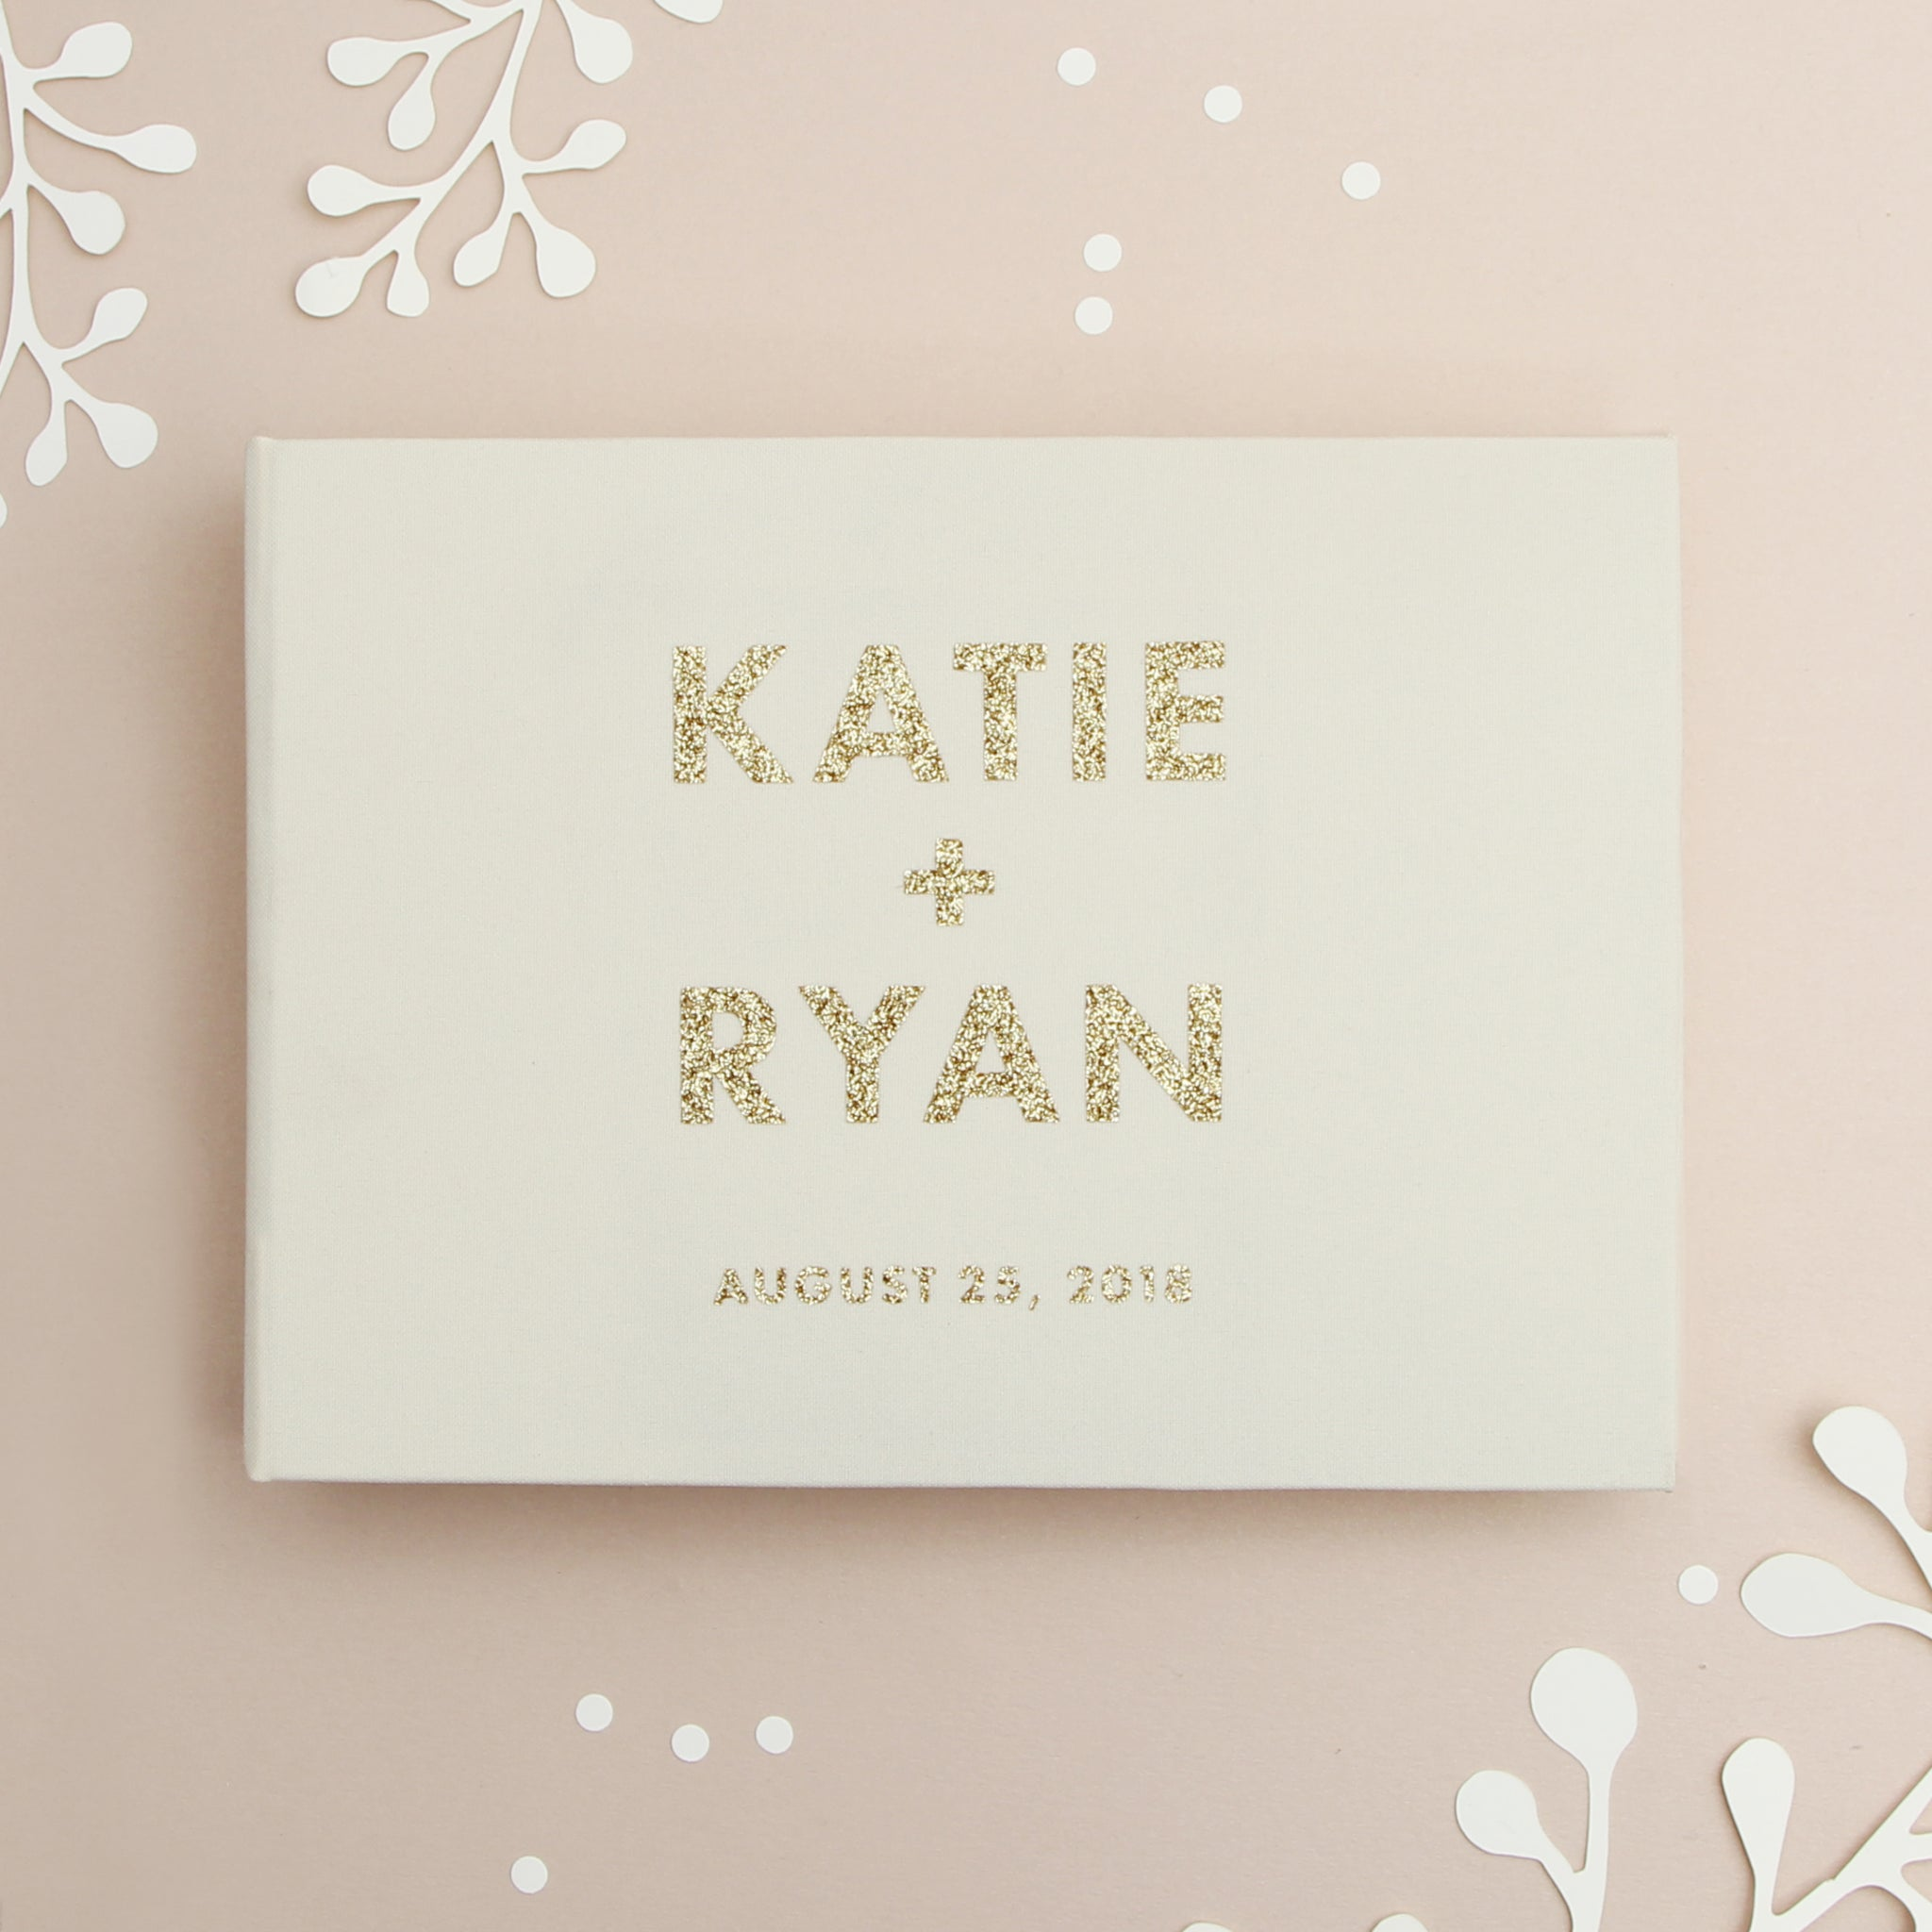 Instant Wedding Album Ivory Guest Book with Gold Glitter BOLD Lettering Instax Photo album - Liumy